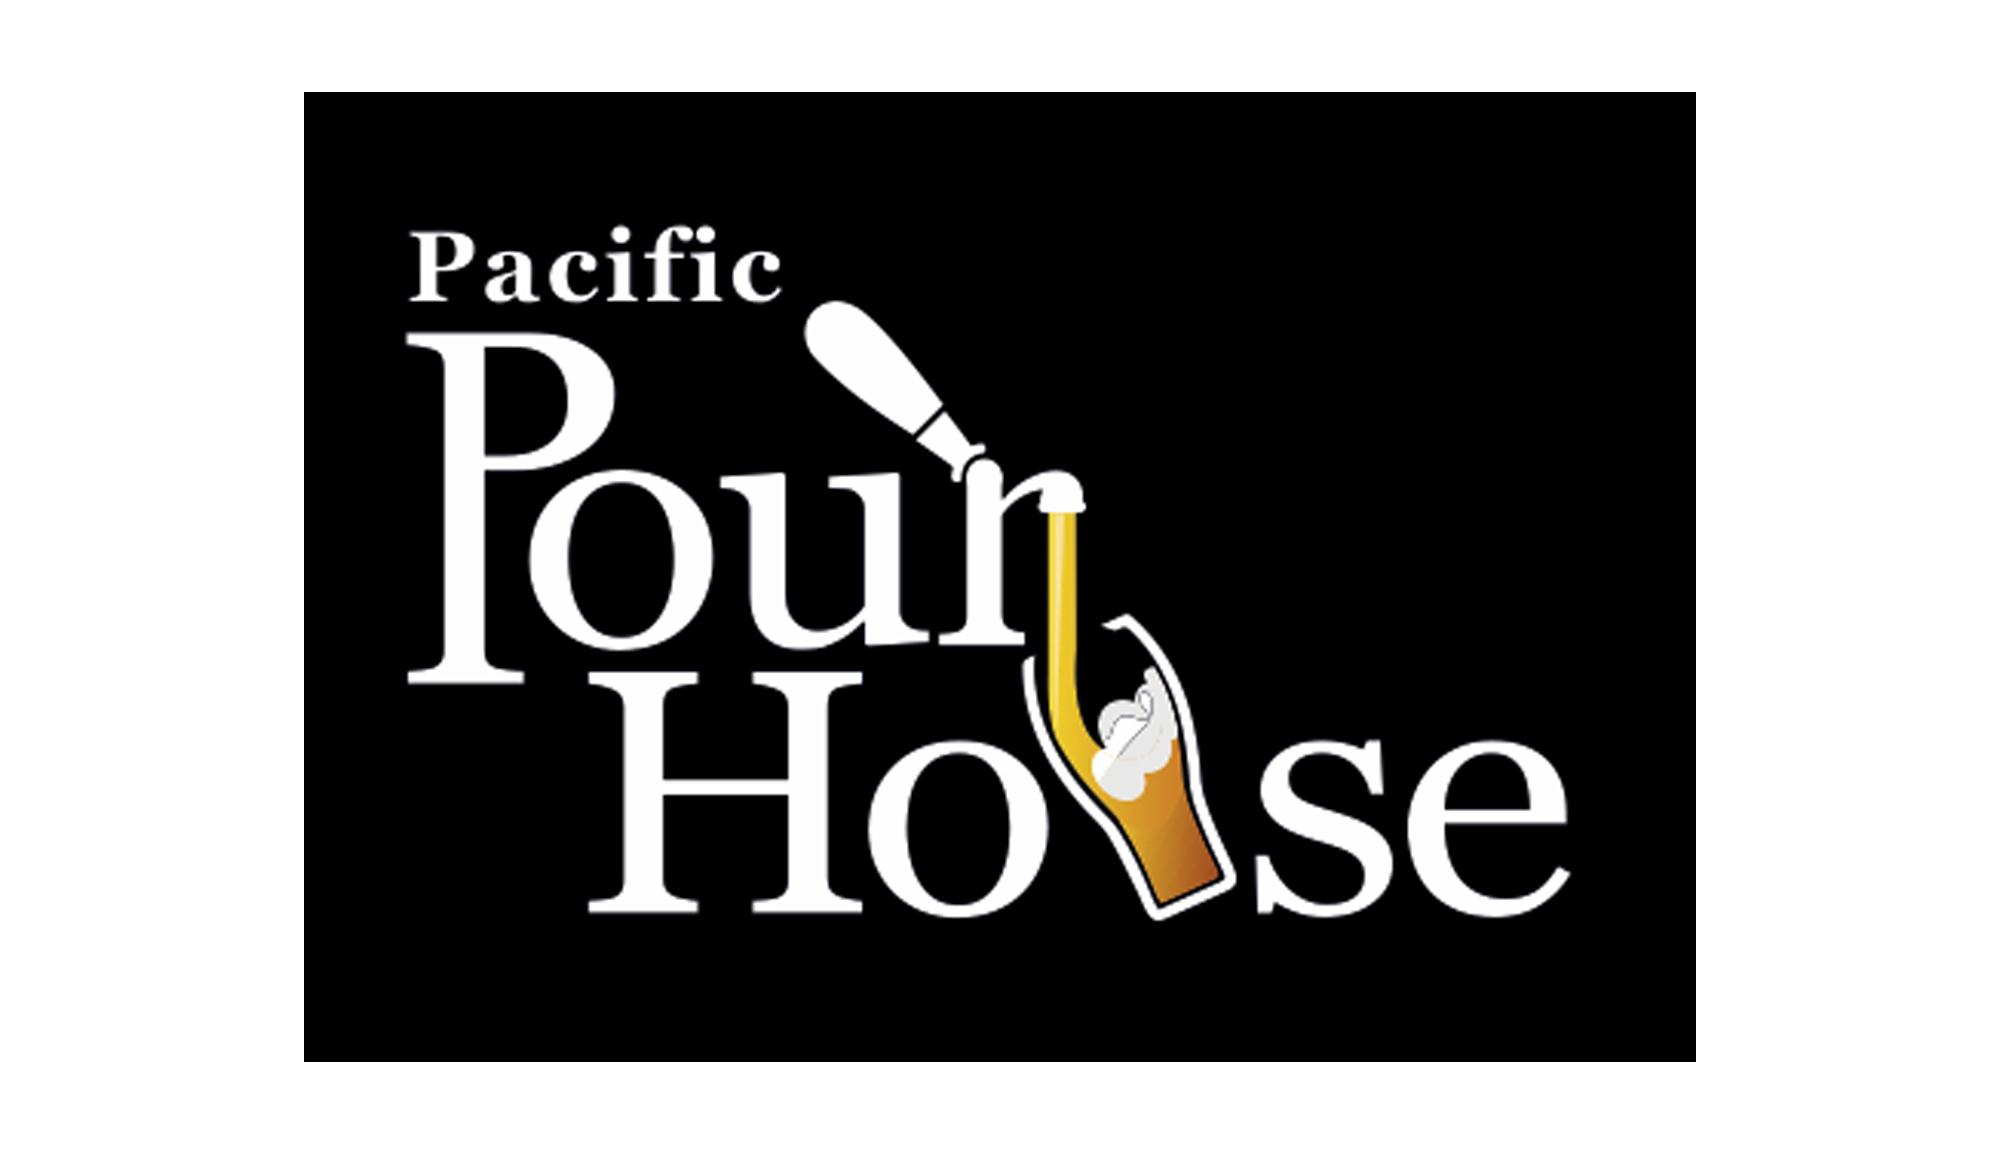 Pacific Pour House restaurant logo